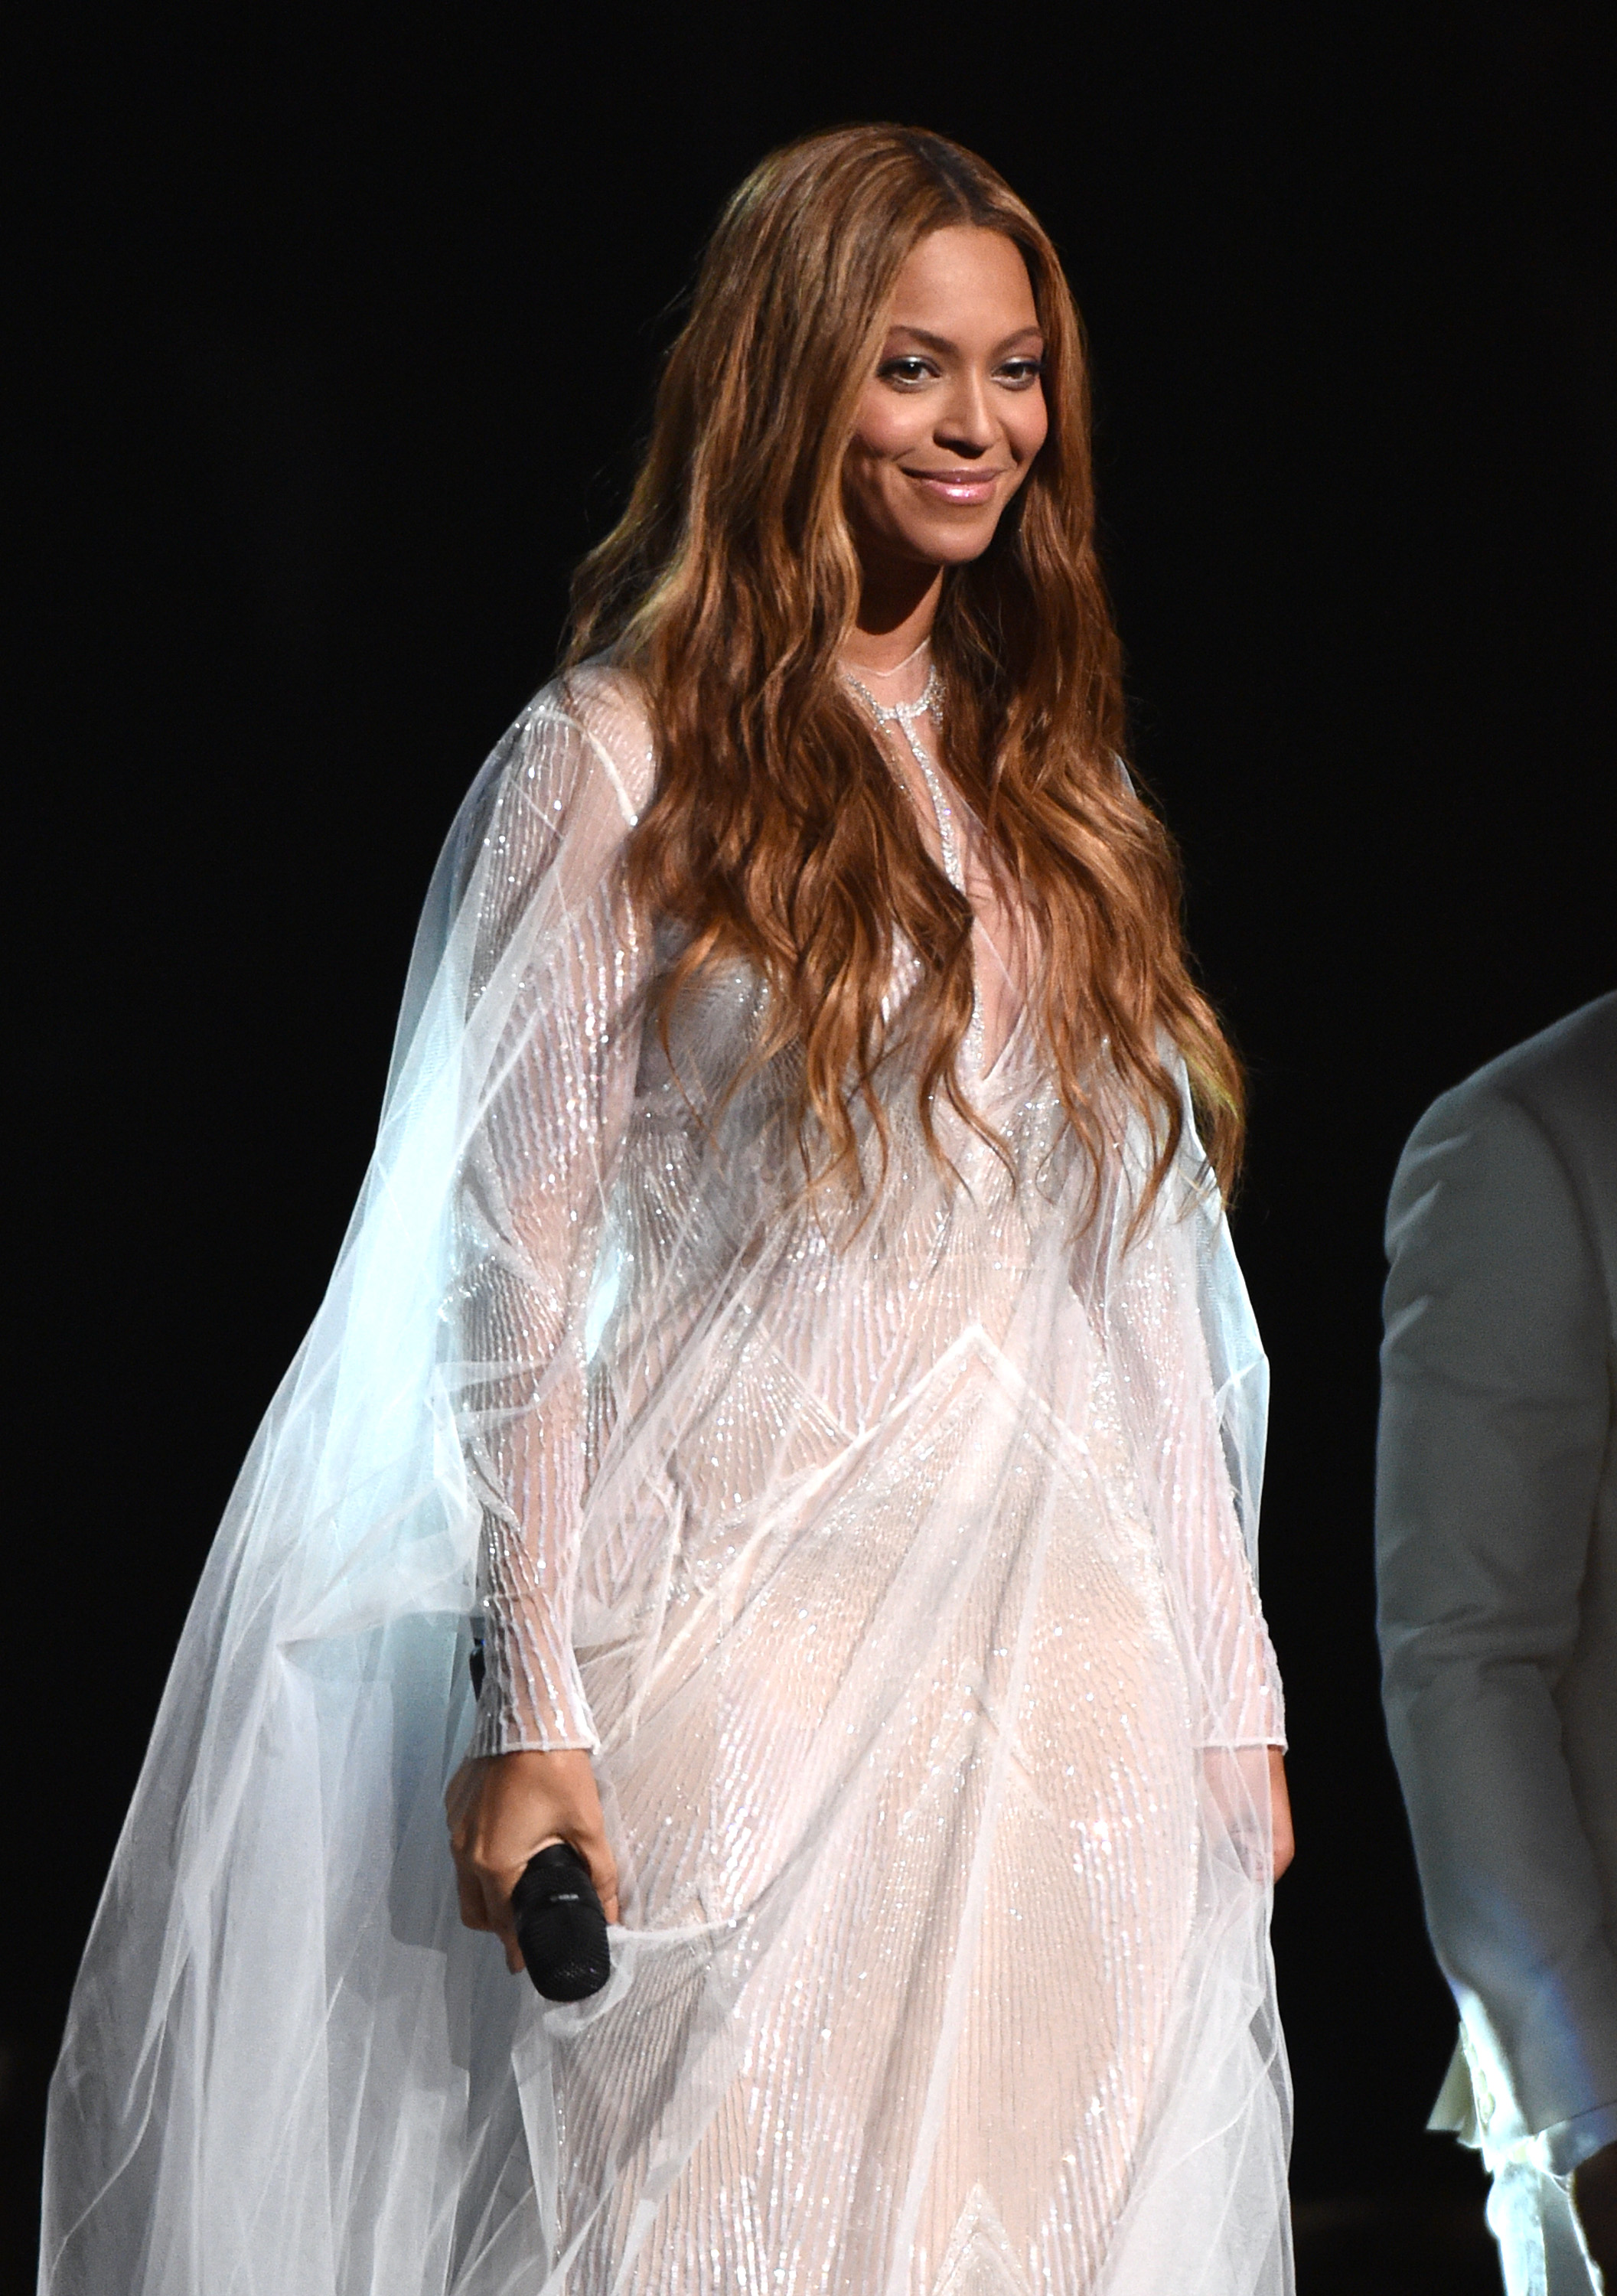 Beyonce performs at the 57th annual Grammy Awards in Los Angeles on Feb. 8, 2015.